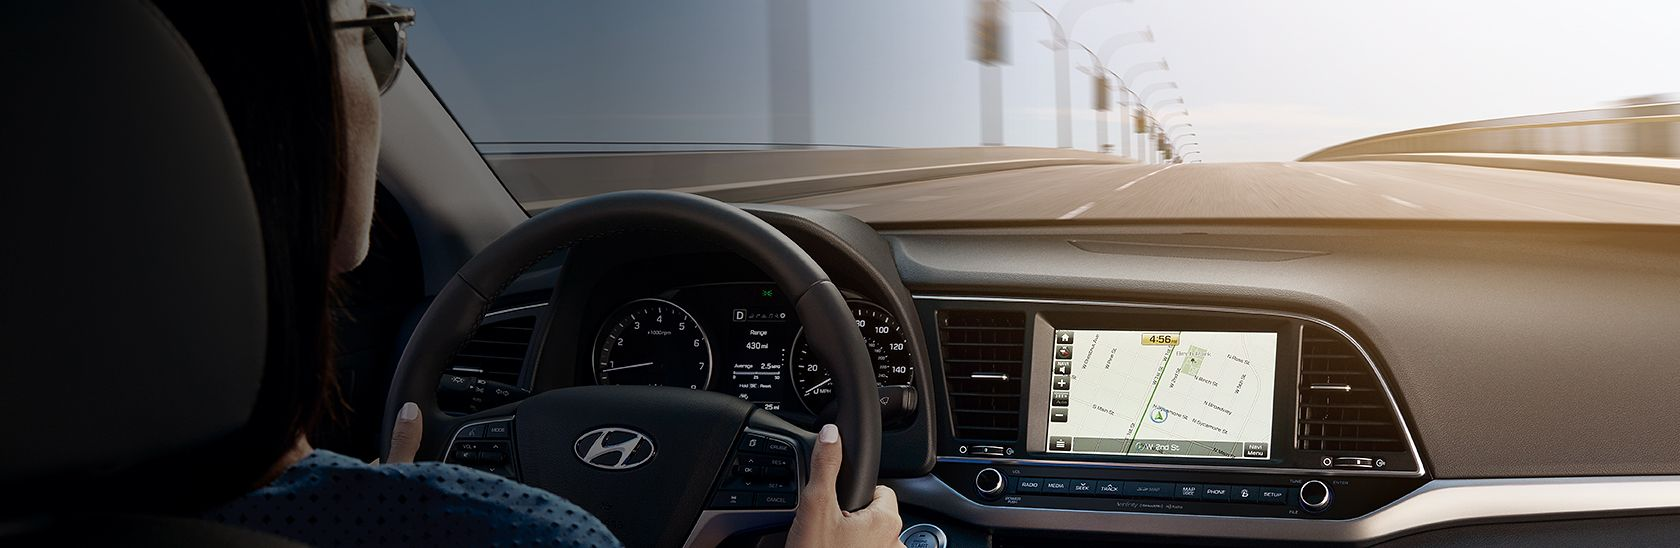 Hyundai National Test Drive Program